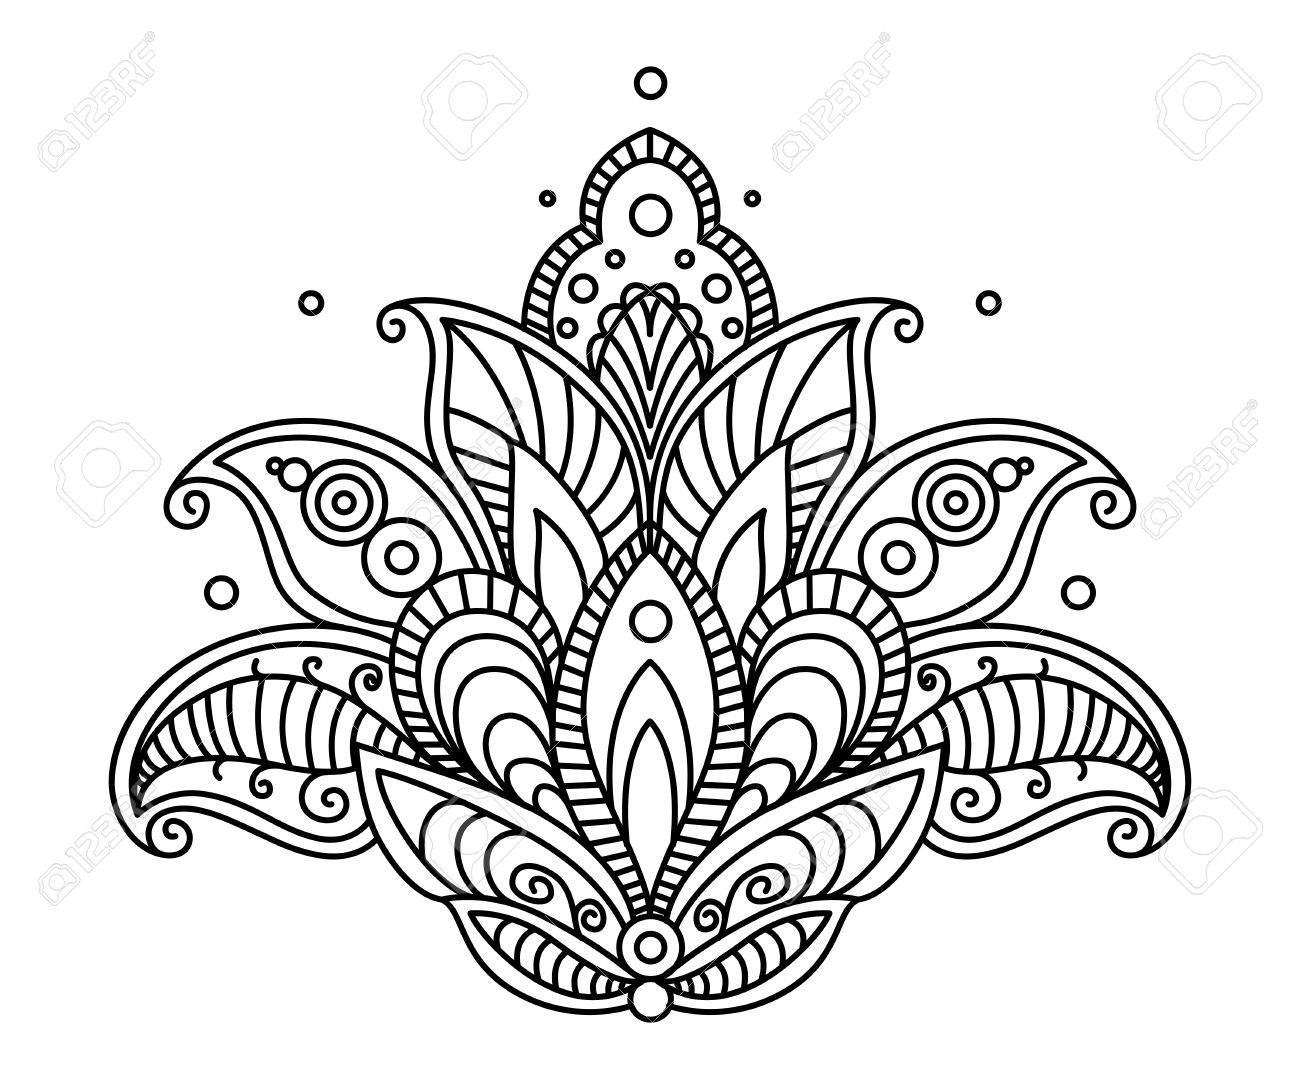 28396815 pretty ornate paisley flower design element in a dainty